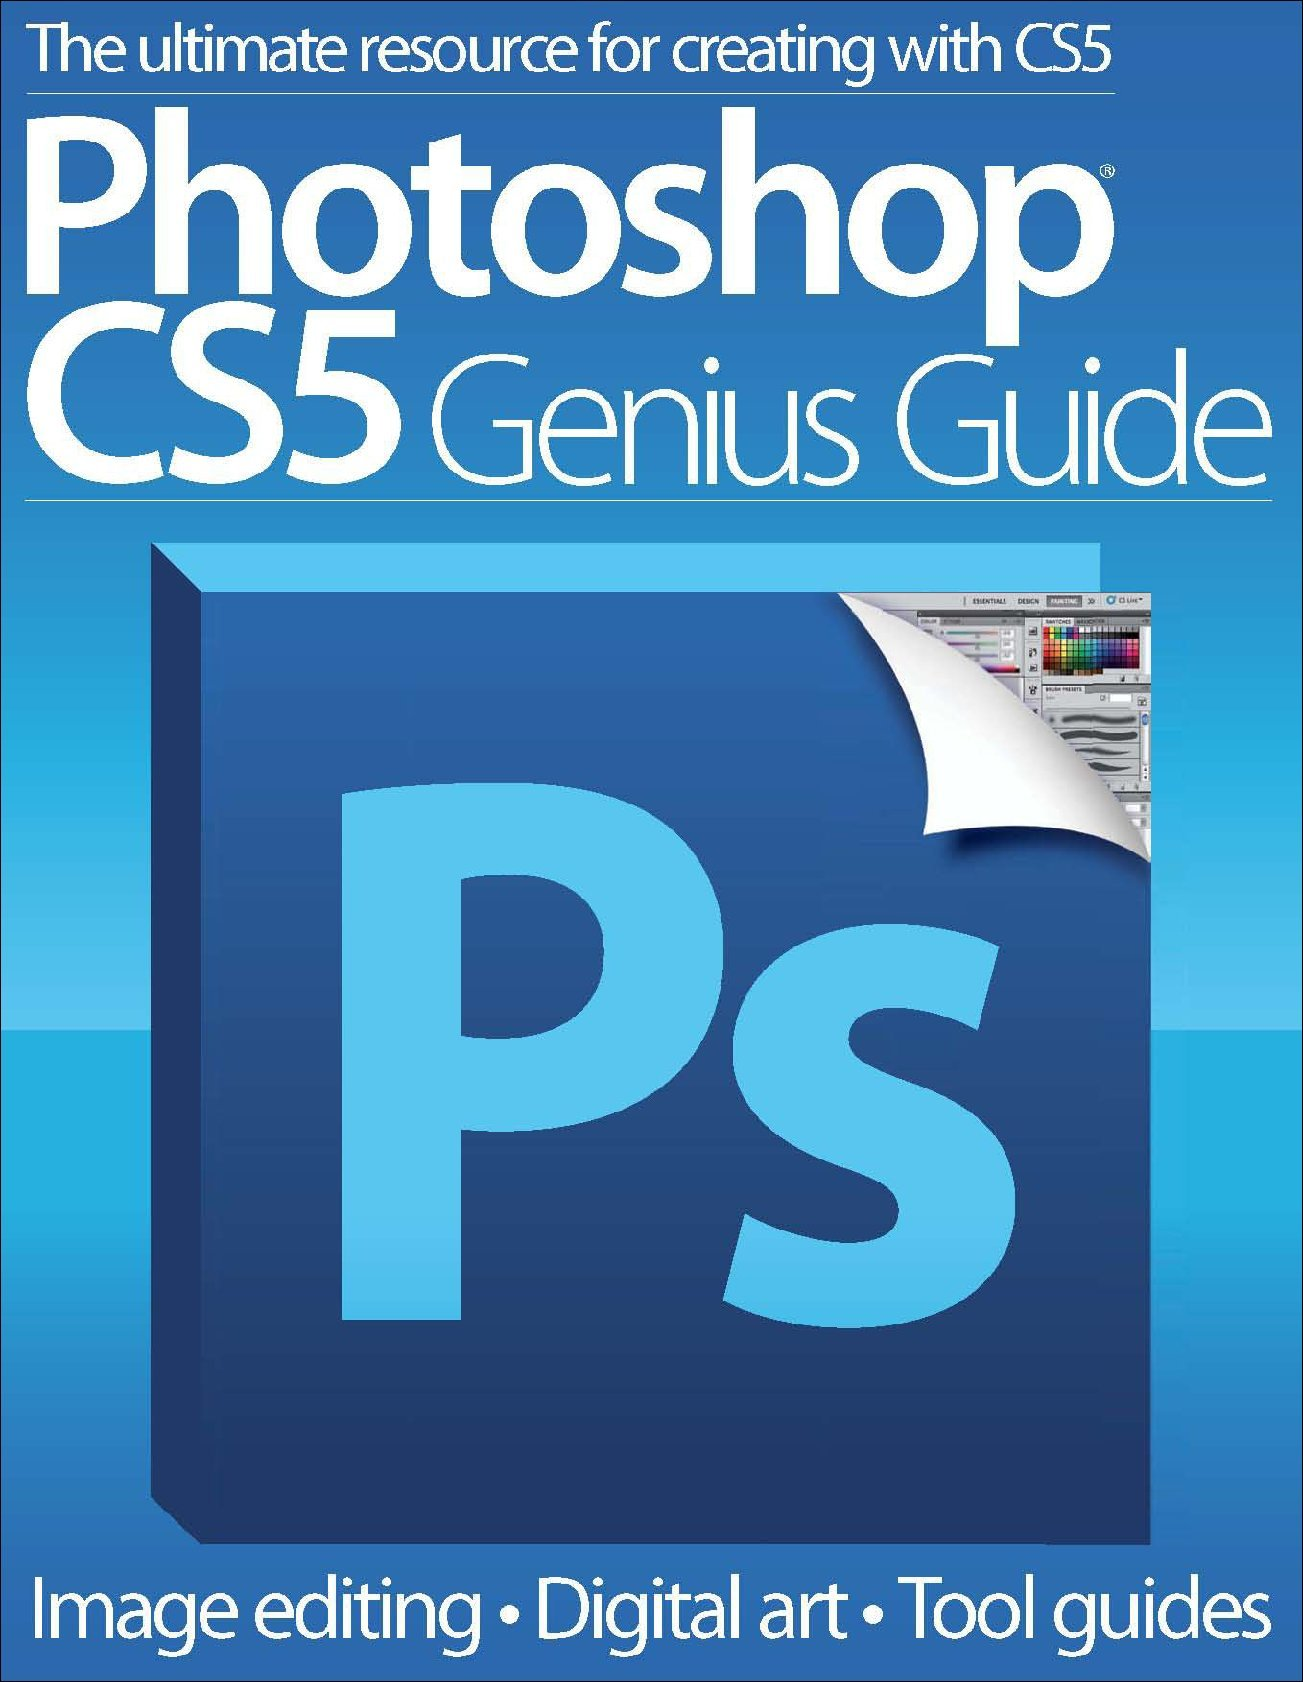 Photoshop CS5 Genius Guide Digital